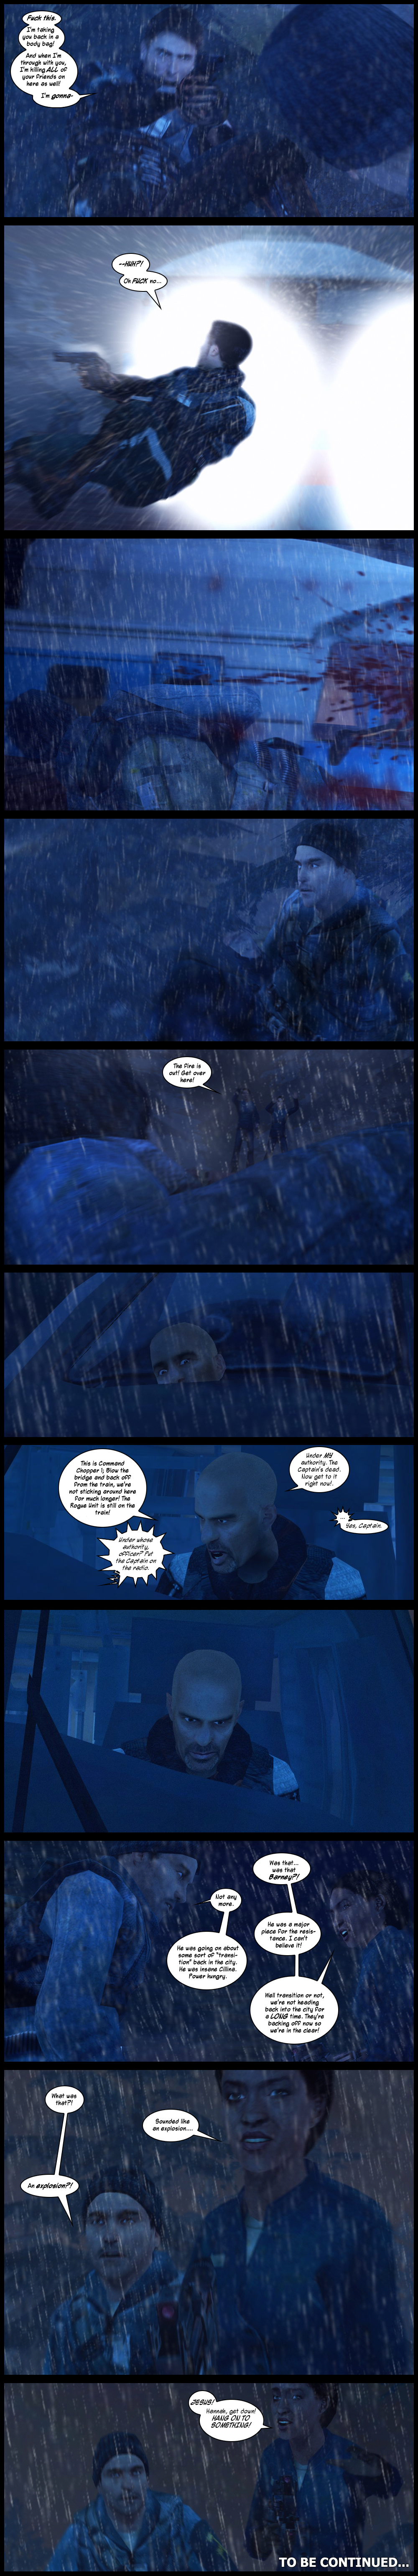 Beyond Borders Episode III Page 6